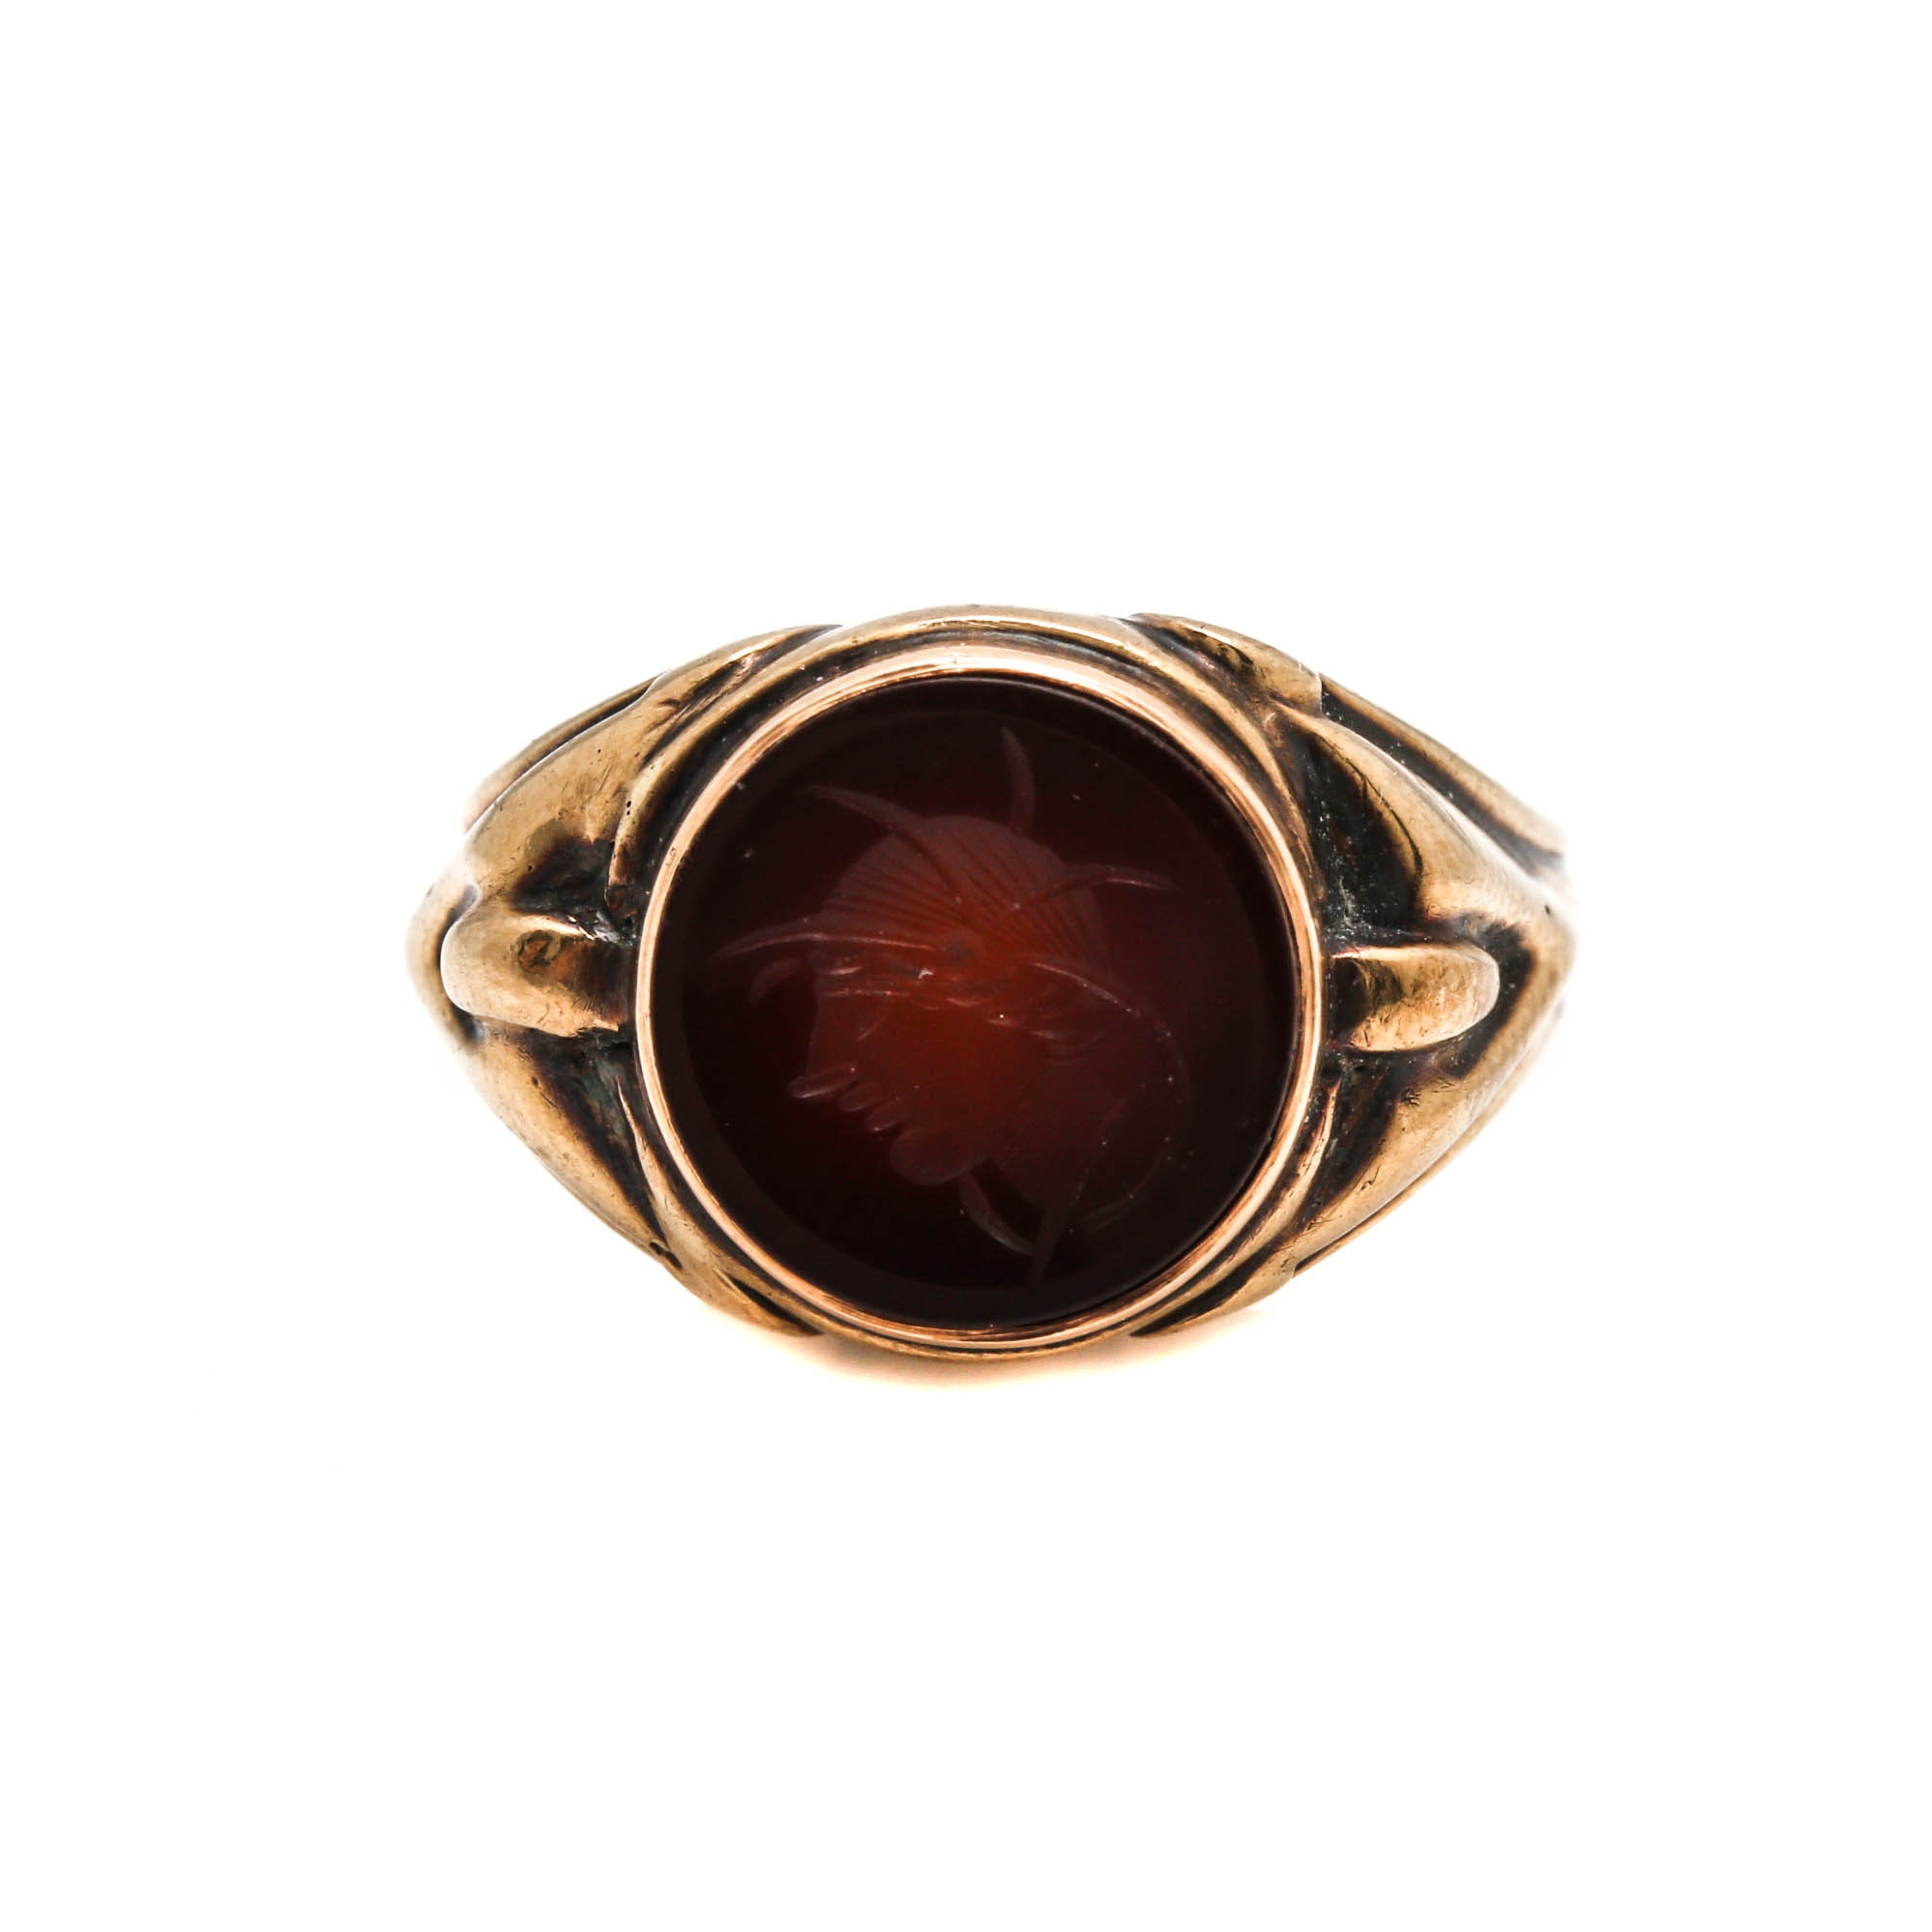 10K Yellow Gold Sard Intaglio Ring